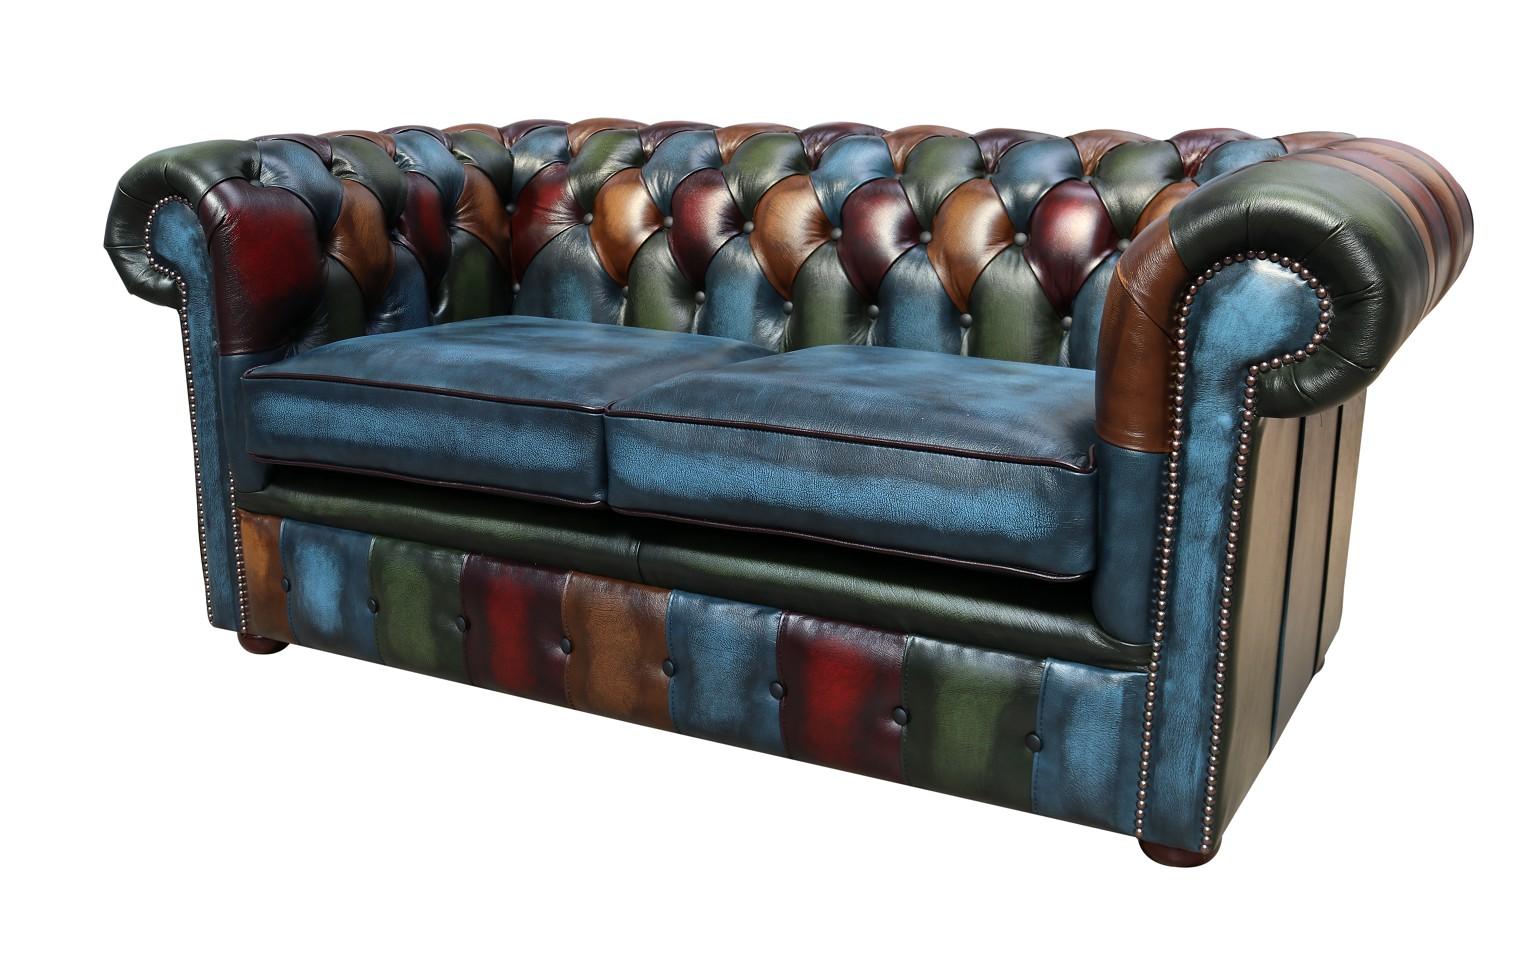 Remarkable Patchwork Leather 2 Seater Chesterfield Sofa Shop Now Home Interior And Landscaping Sapresignezvosmurscom